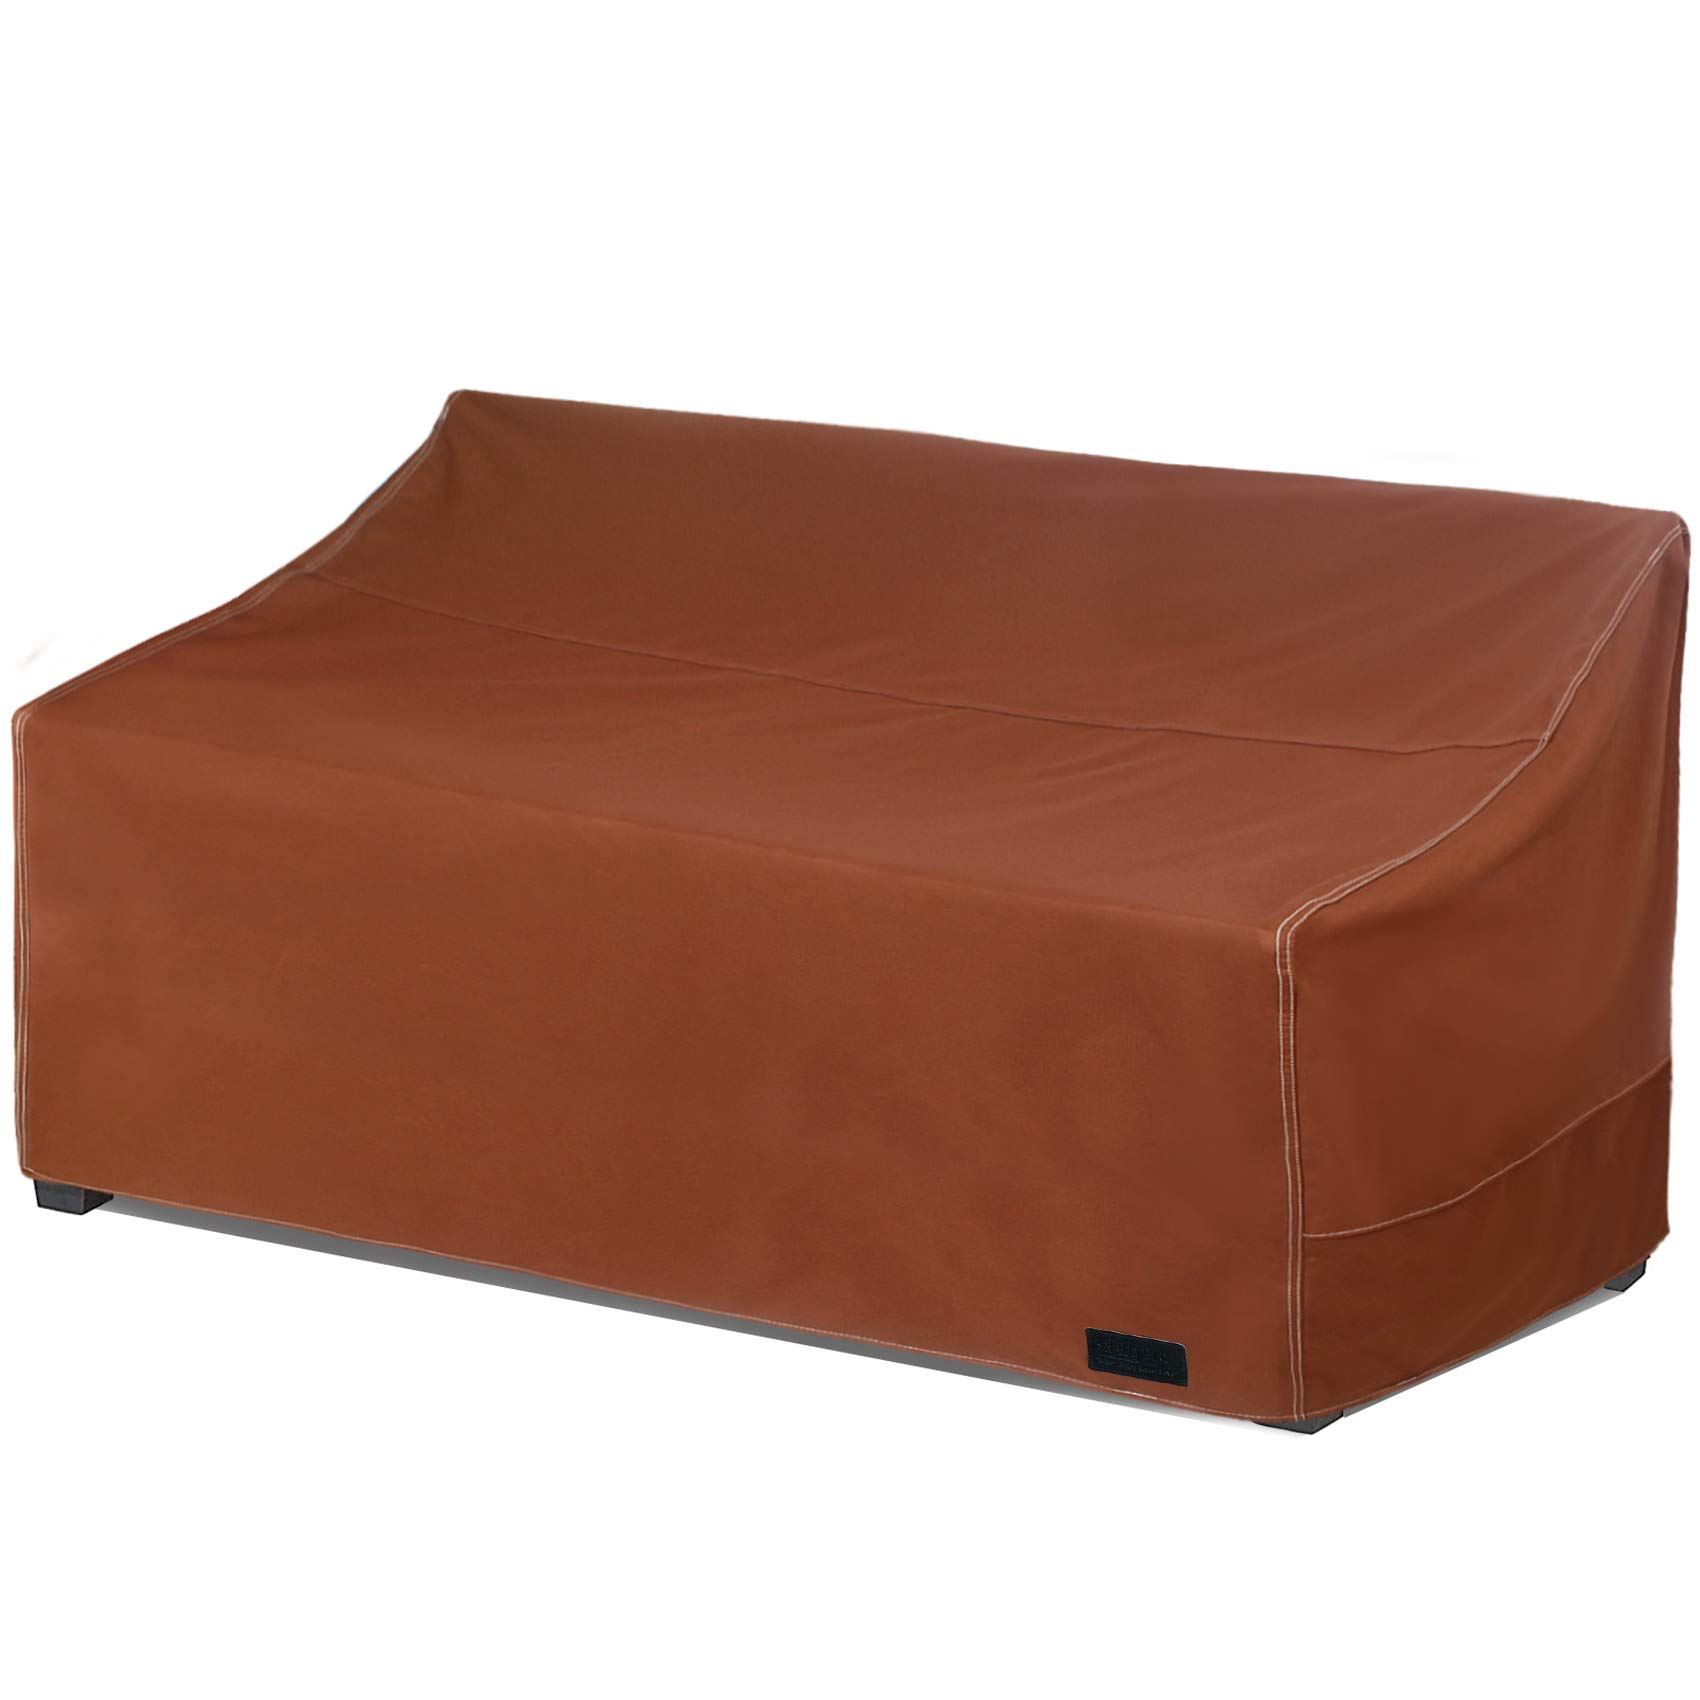 "NettyPro Patio Sofa Cover, Waterproof 600D Heavy Duty Outdoor Couch Furniture 3 Seater Cover, 79"" Wx 38"" Dx 35"" H, Brown"